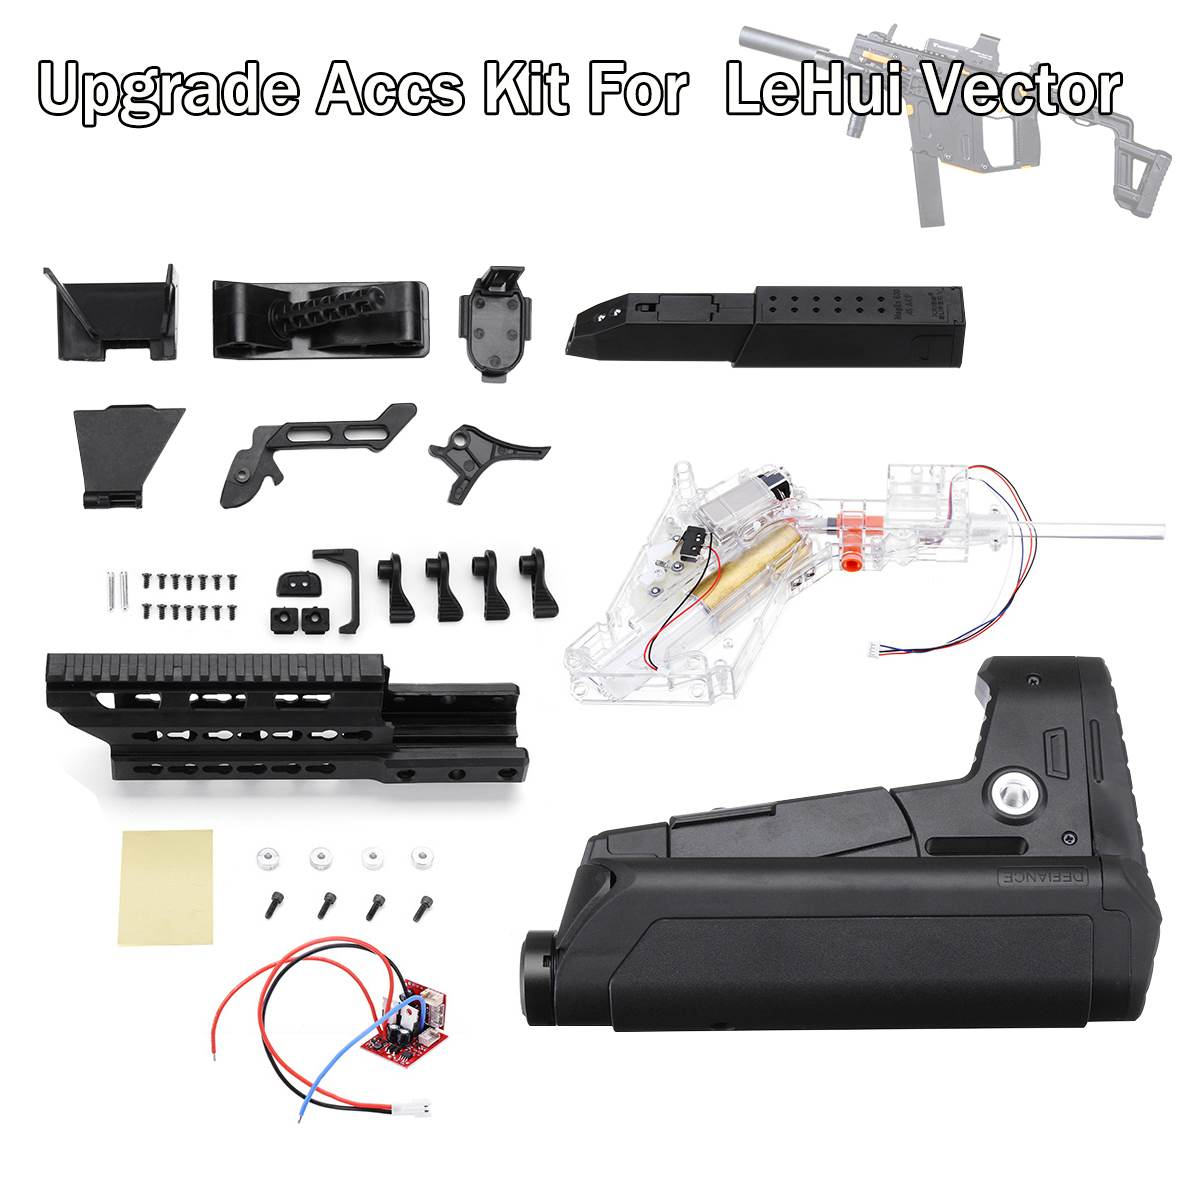 Magazine Modified Parts For LeHui Vector V2 Gel Ball For Blaster Water For Gun Upgrade Accs Kit